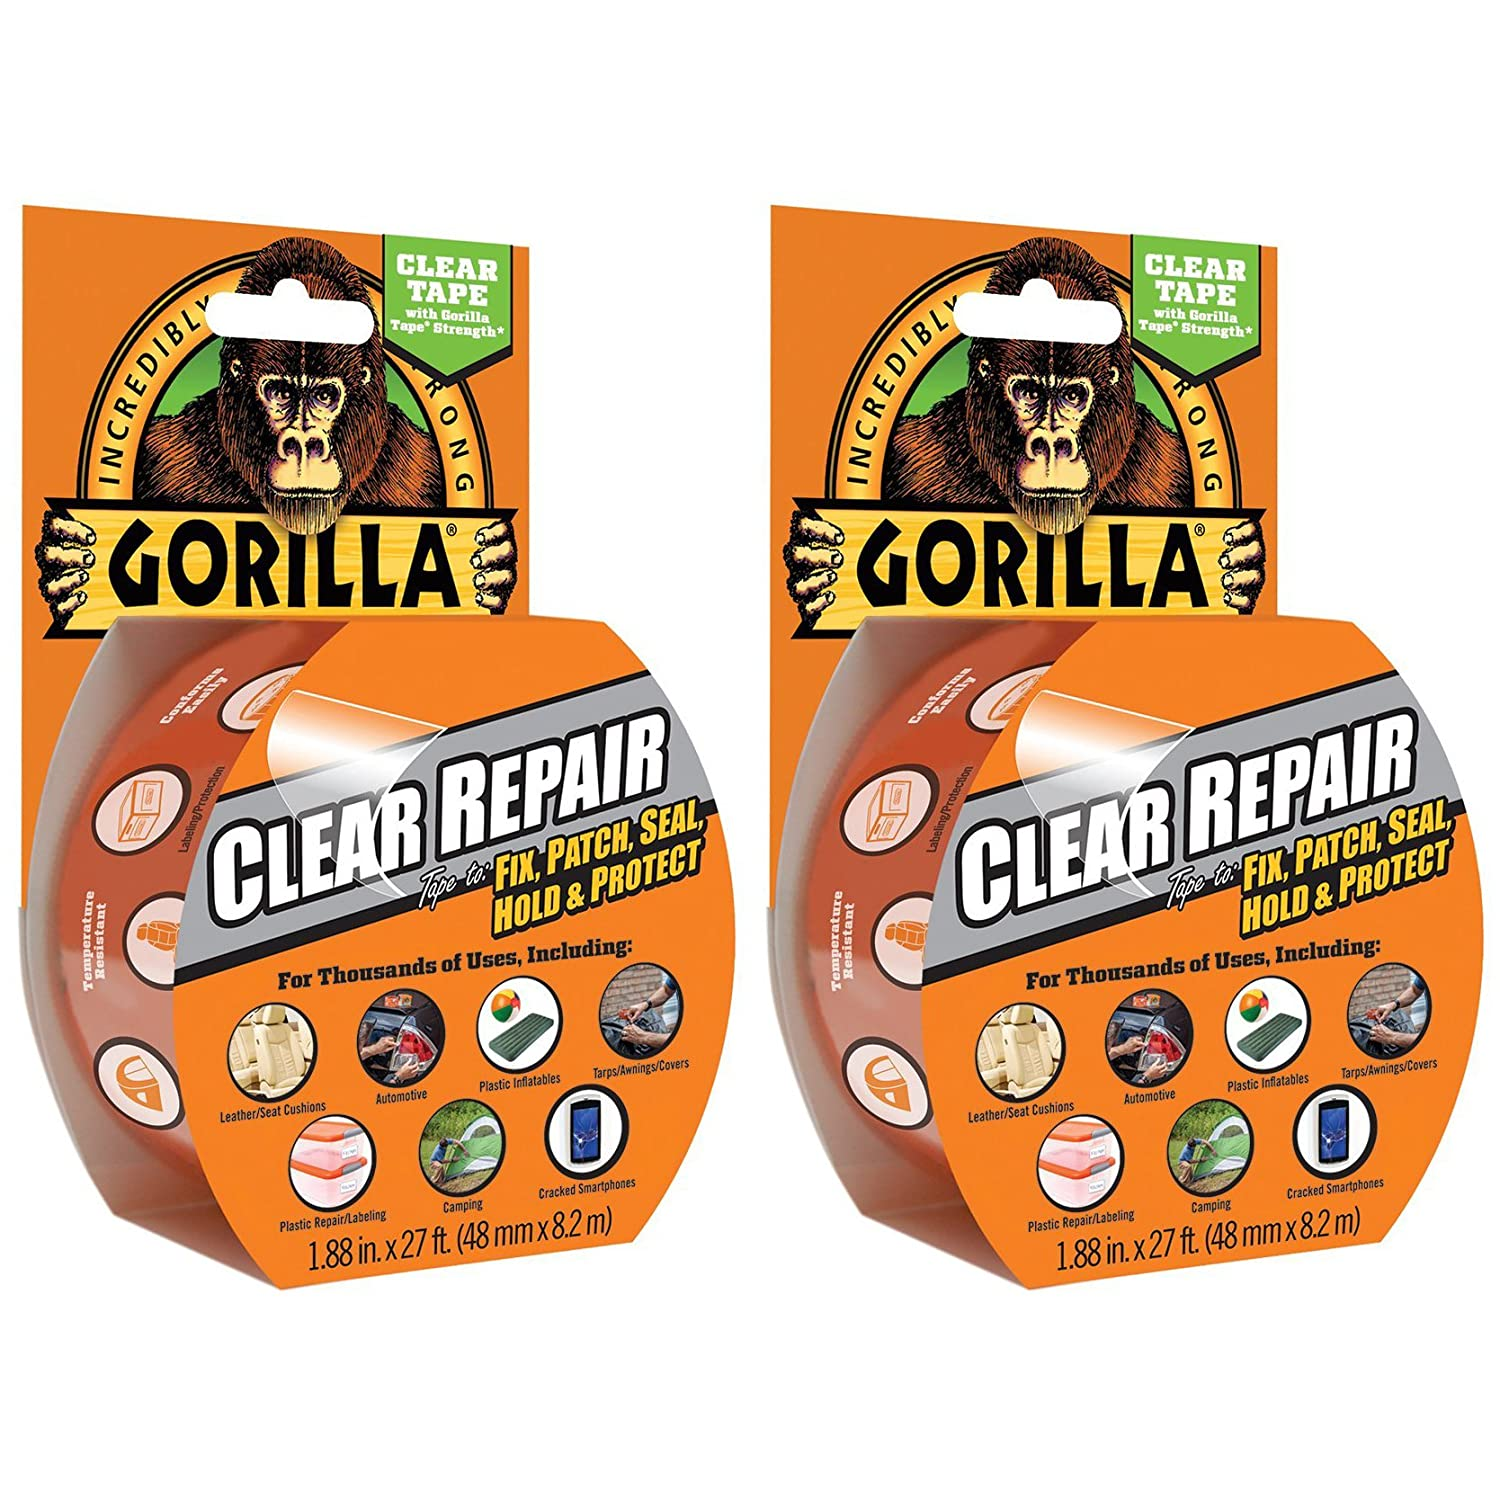 Clear 2 X Gorilla Tape 3044701 8.2m Repair Tape with Gloss Finish